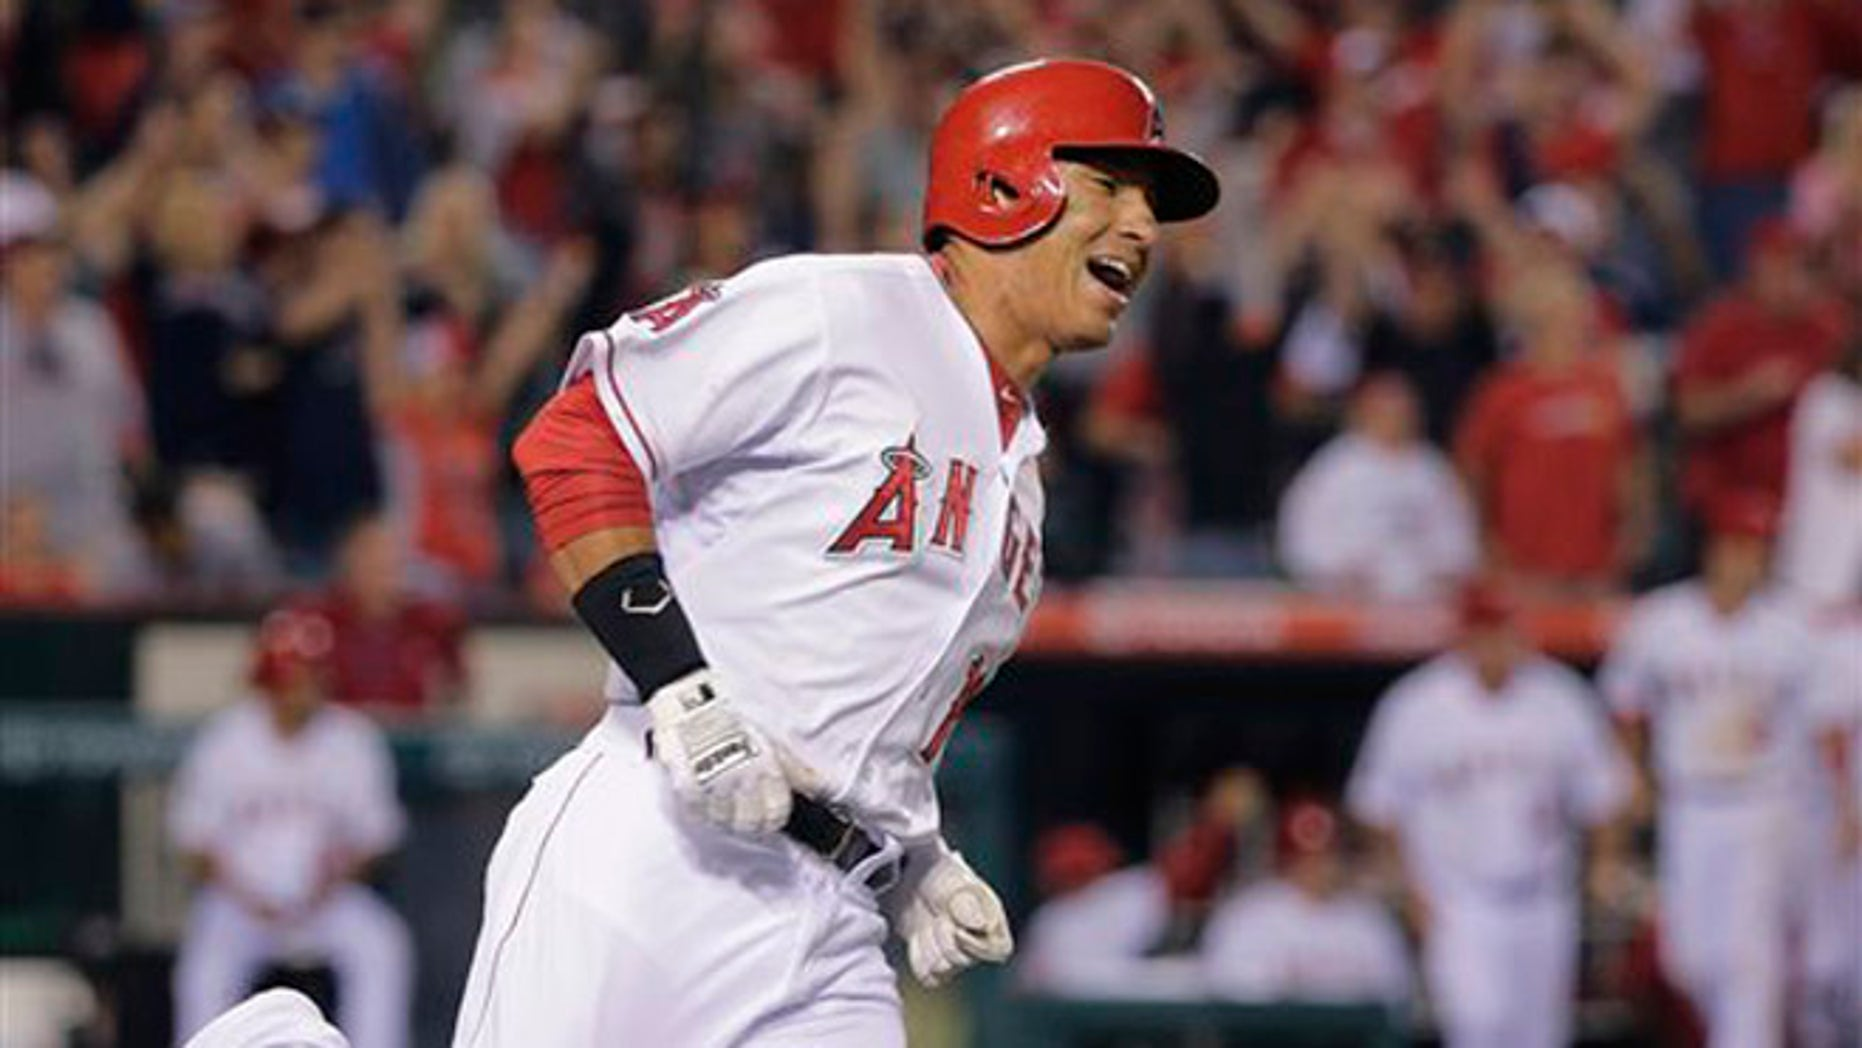 Los Angeles Angels' Efren Navarro celebrates his walk-off double during the 16th inning of a baseball game against the Seattle Mariners on Saturday, July 19, 2014, in Anaheim, Calif. The Angels won 3-2. (AP Photo/Jae C. Hong)